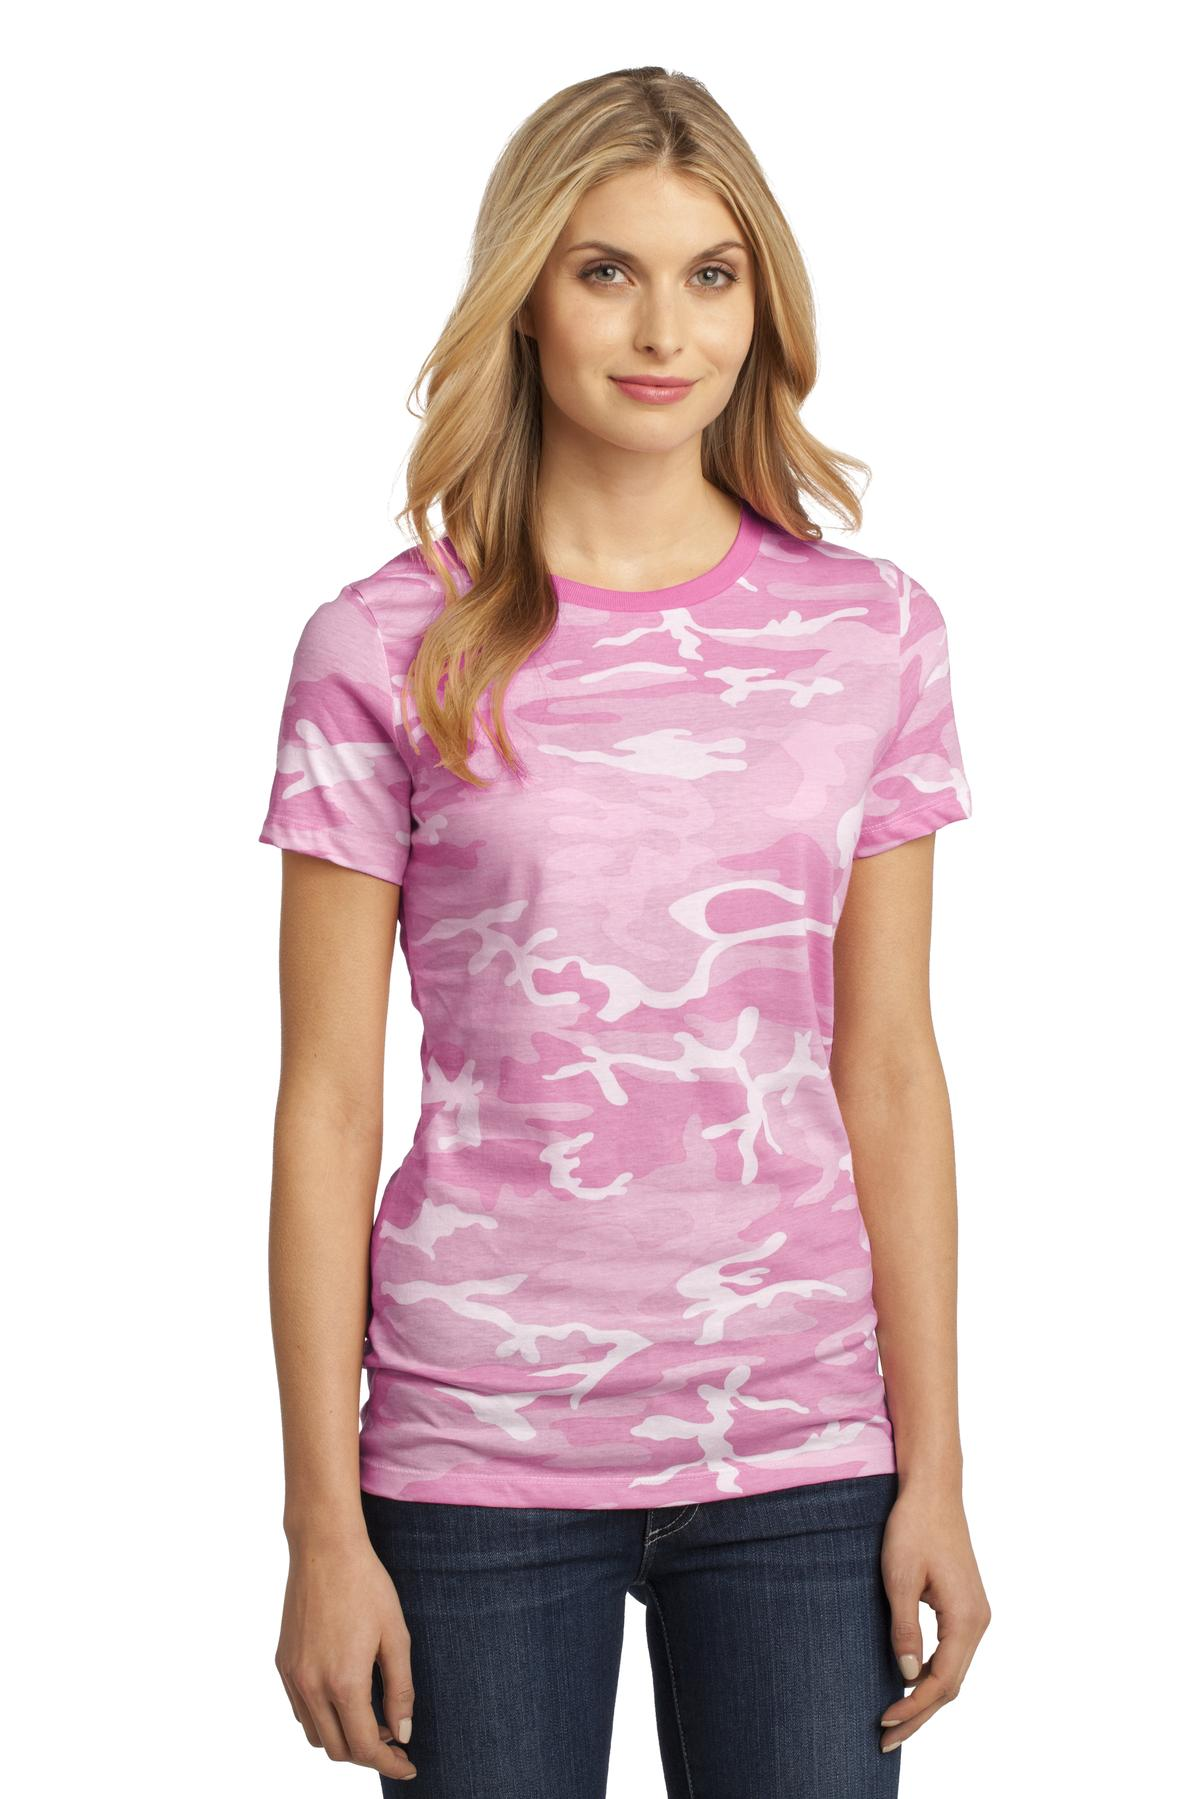 CLOSEOUT District - Ladies Perfect Weight Camo Crew Tee DM104CL